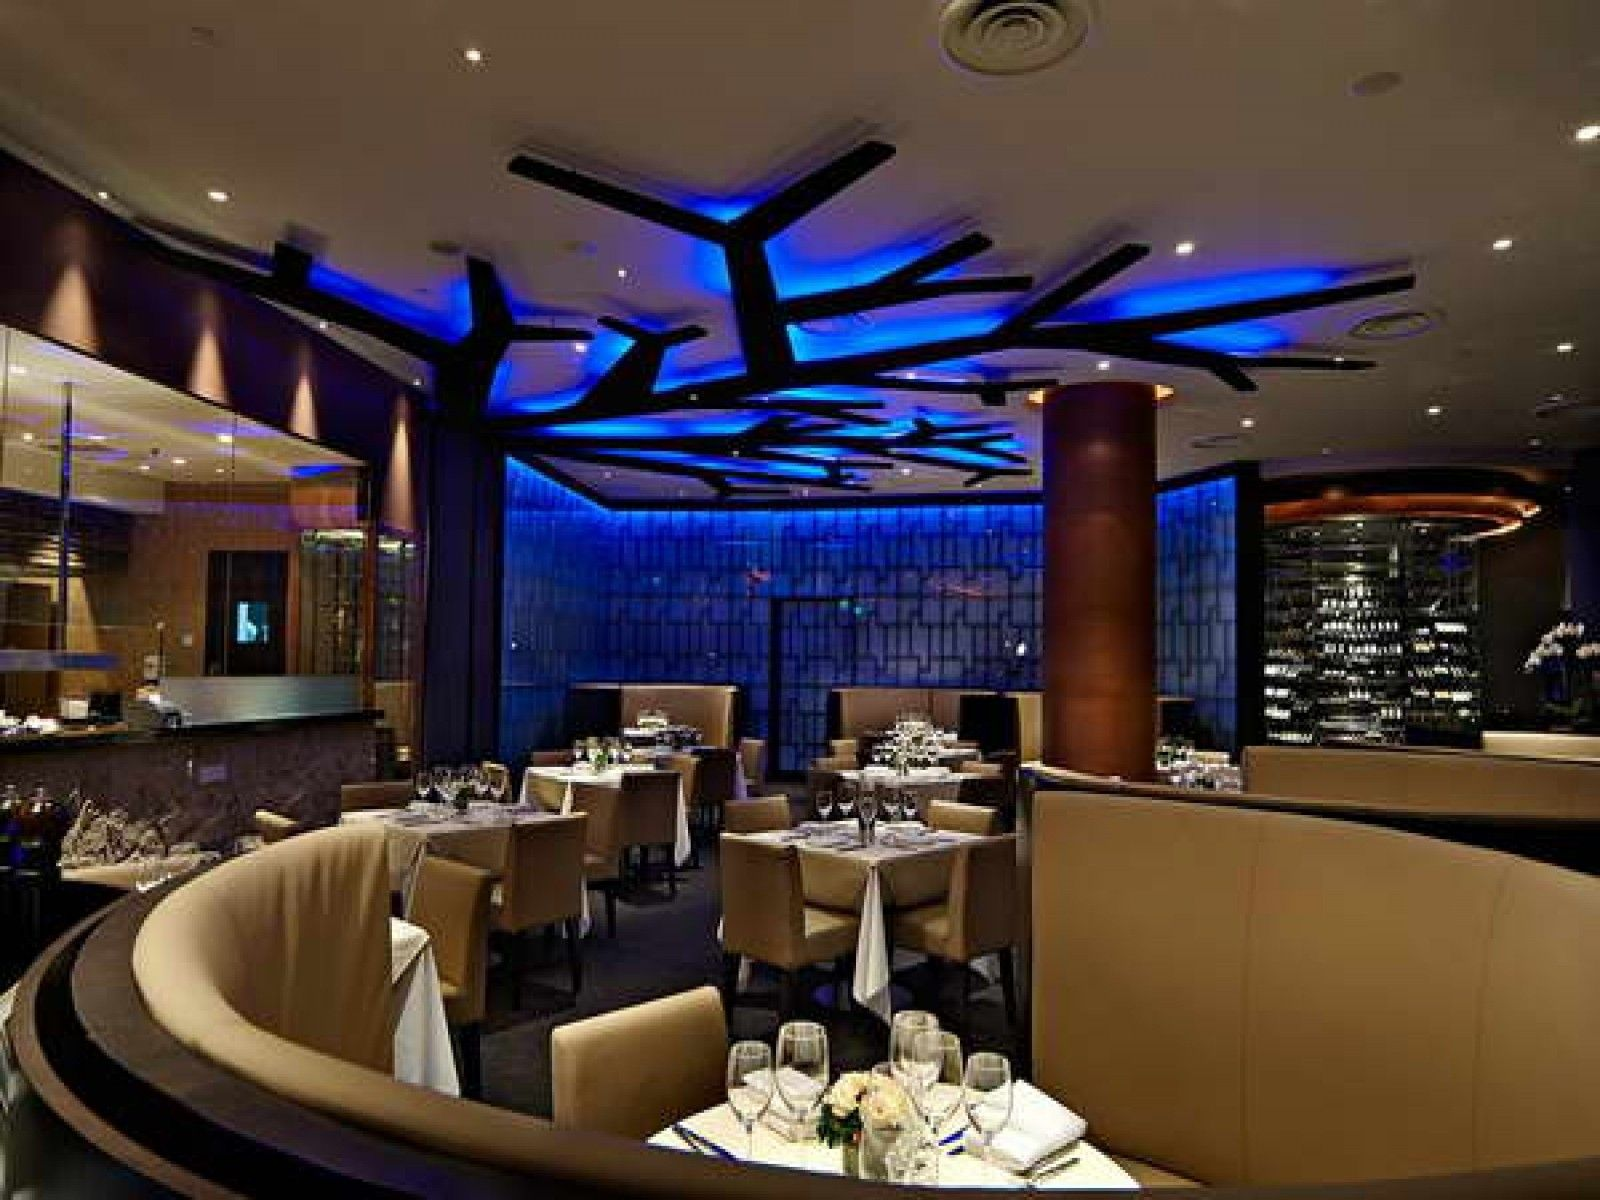 Personable Restaurant Design Concepts With Material Selection